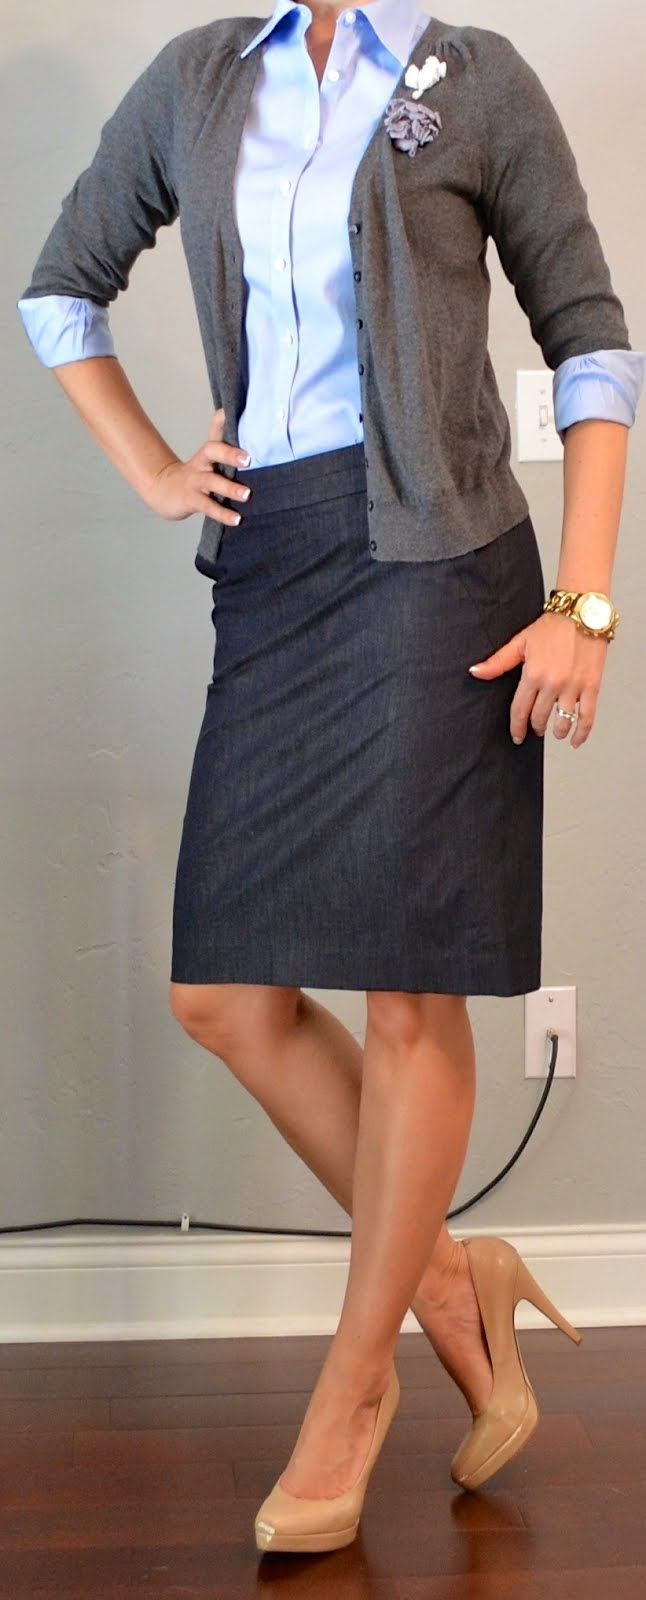 outfit post: denim pencil skirt, blue button down, grey cardigan | Outfit Posts - doing this once i get this skirt tailored.